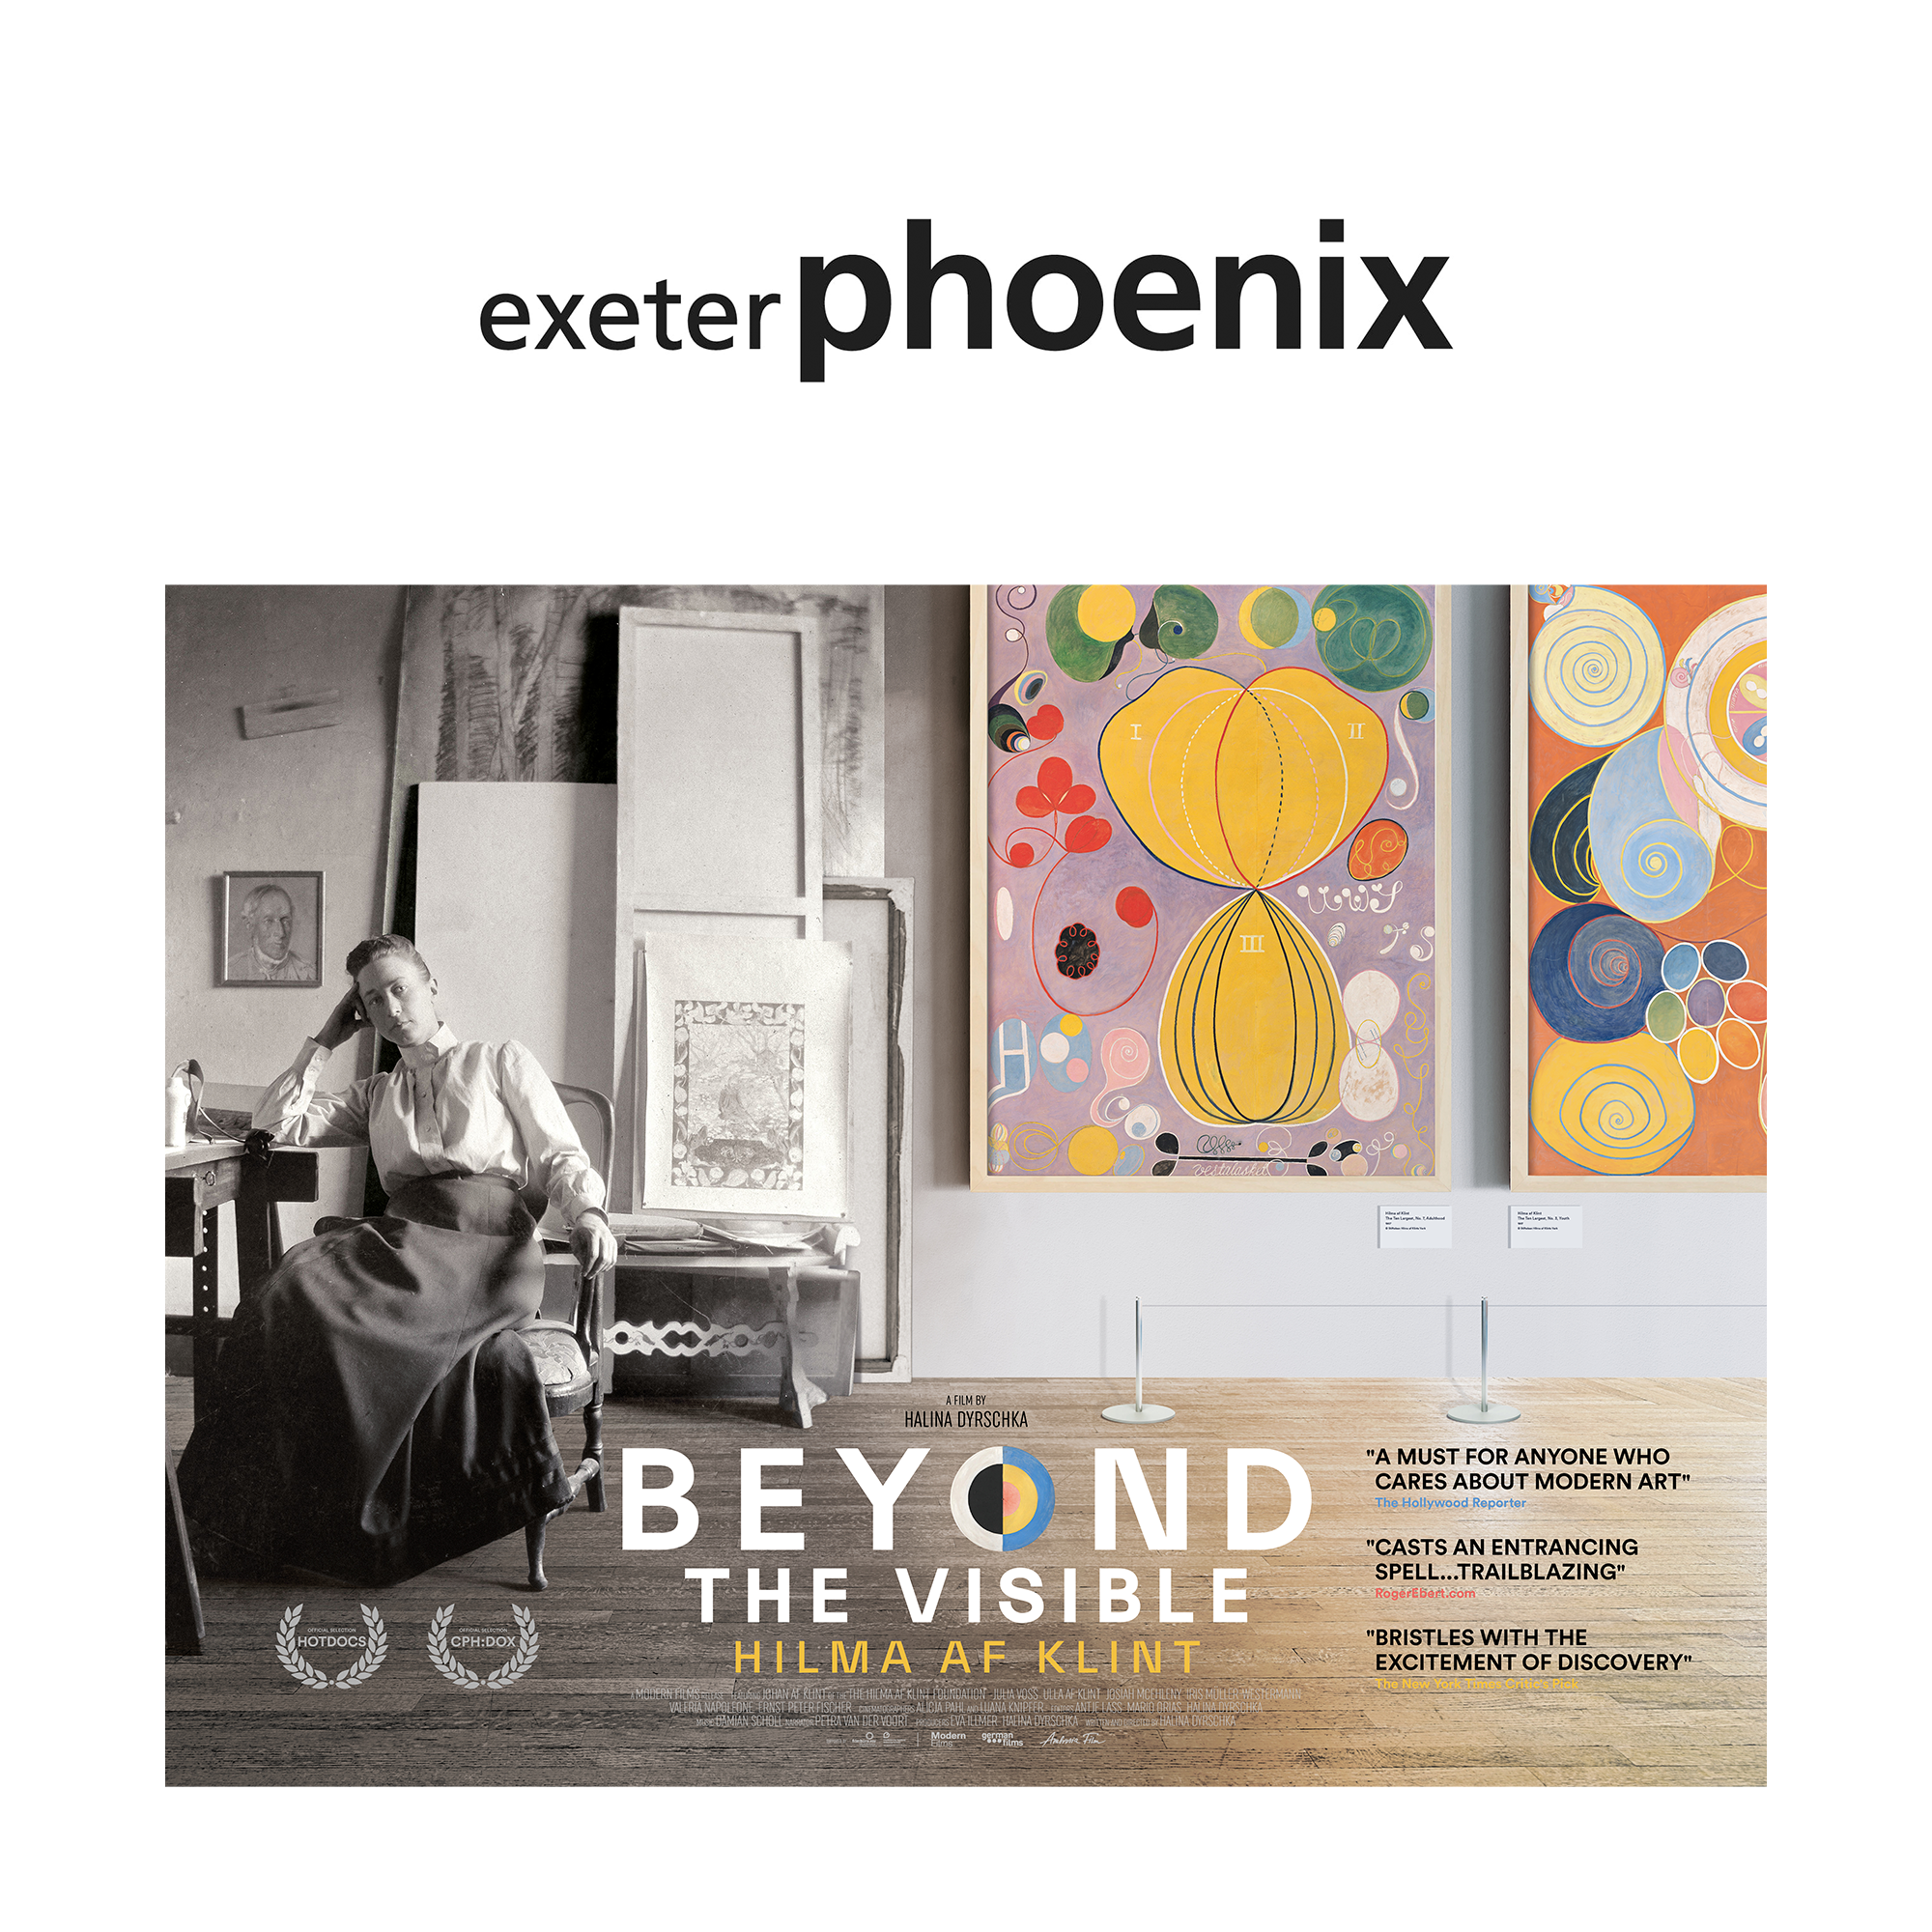 Beyond the Visible: Hilma af Klint at Exeter Phoenix